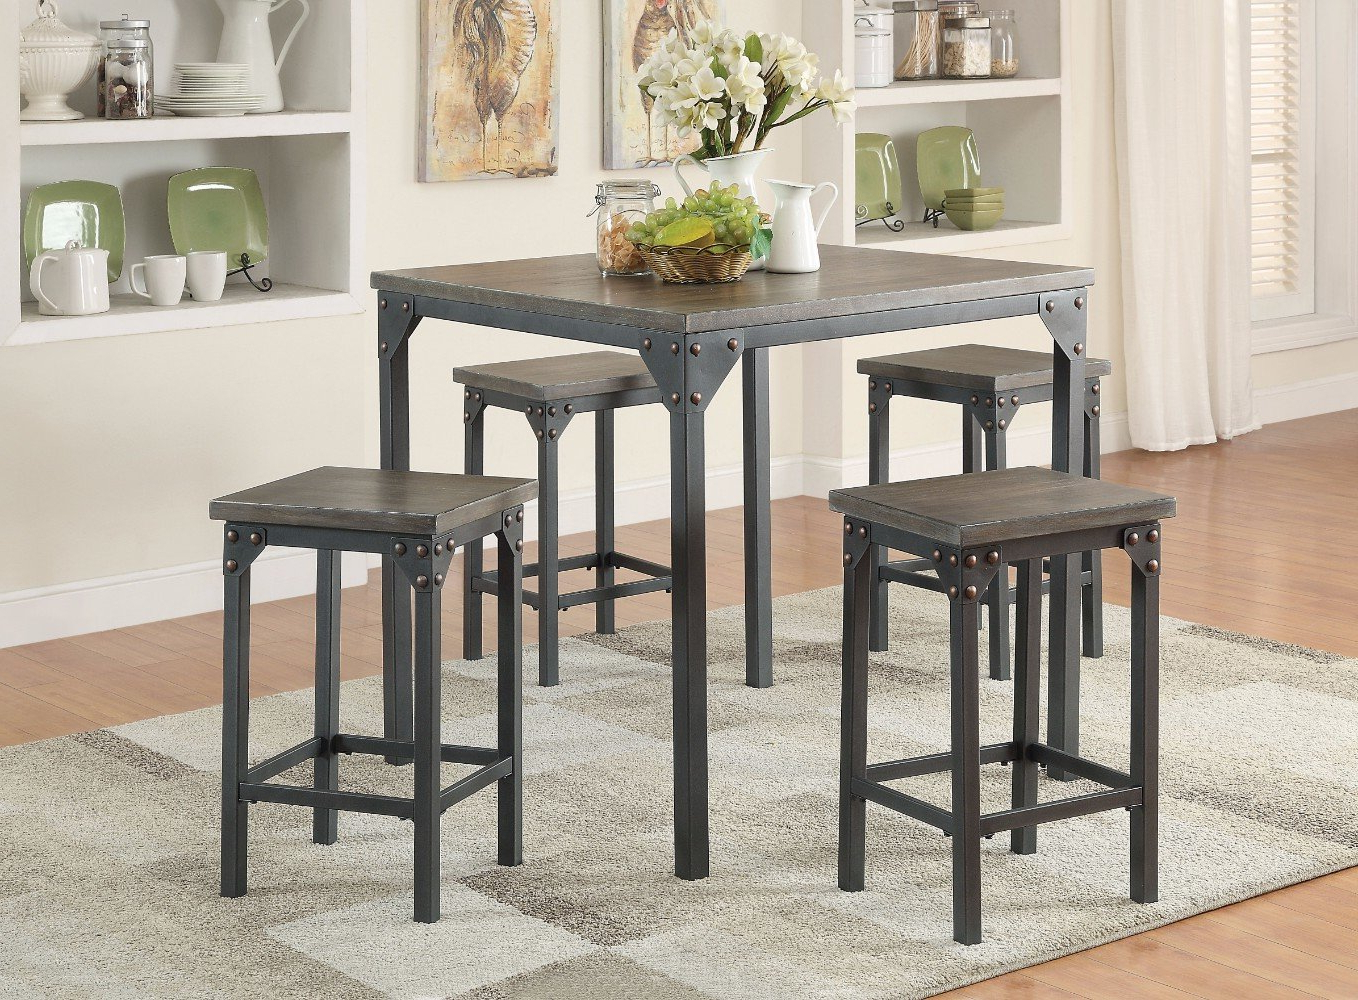 Popular Gracie Oaks Stackpole 5 Piece Counter Height Dining Set (View 5 of 25)